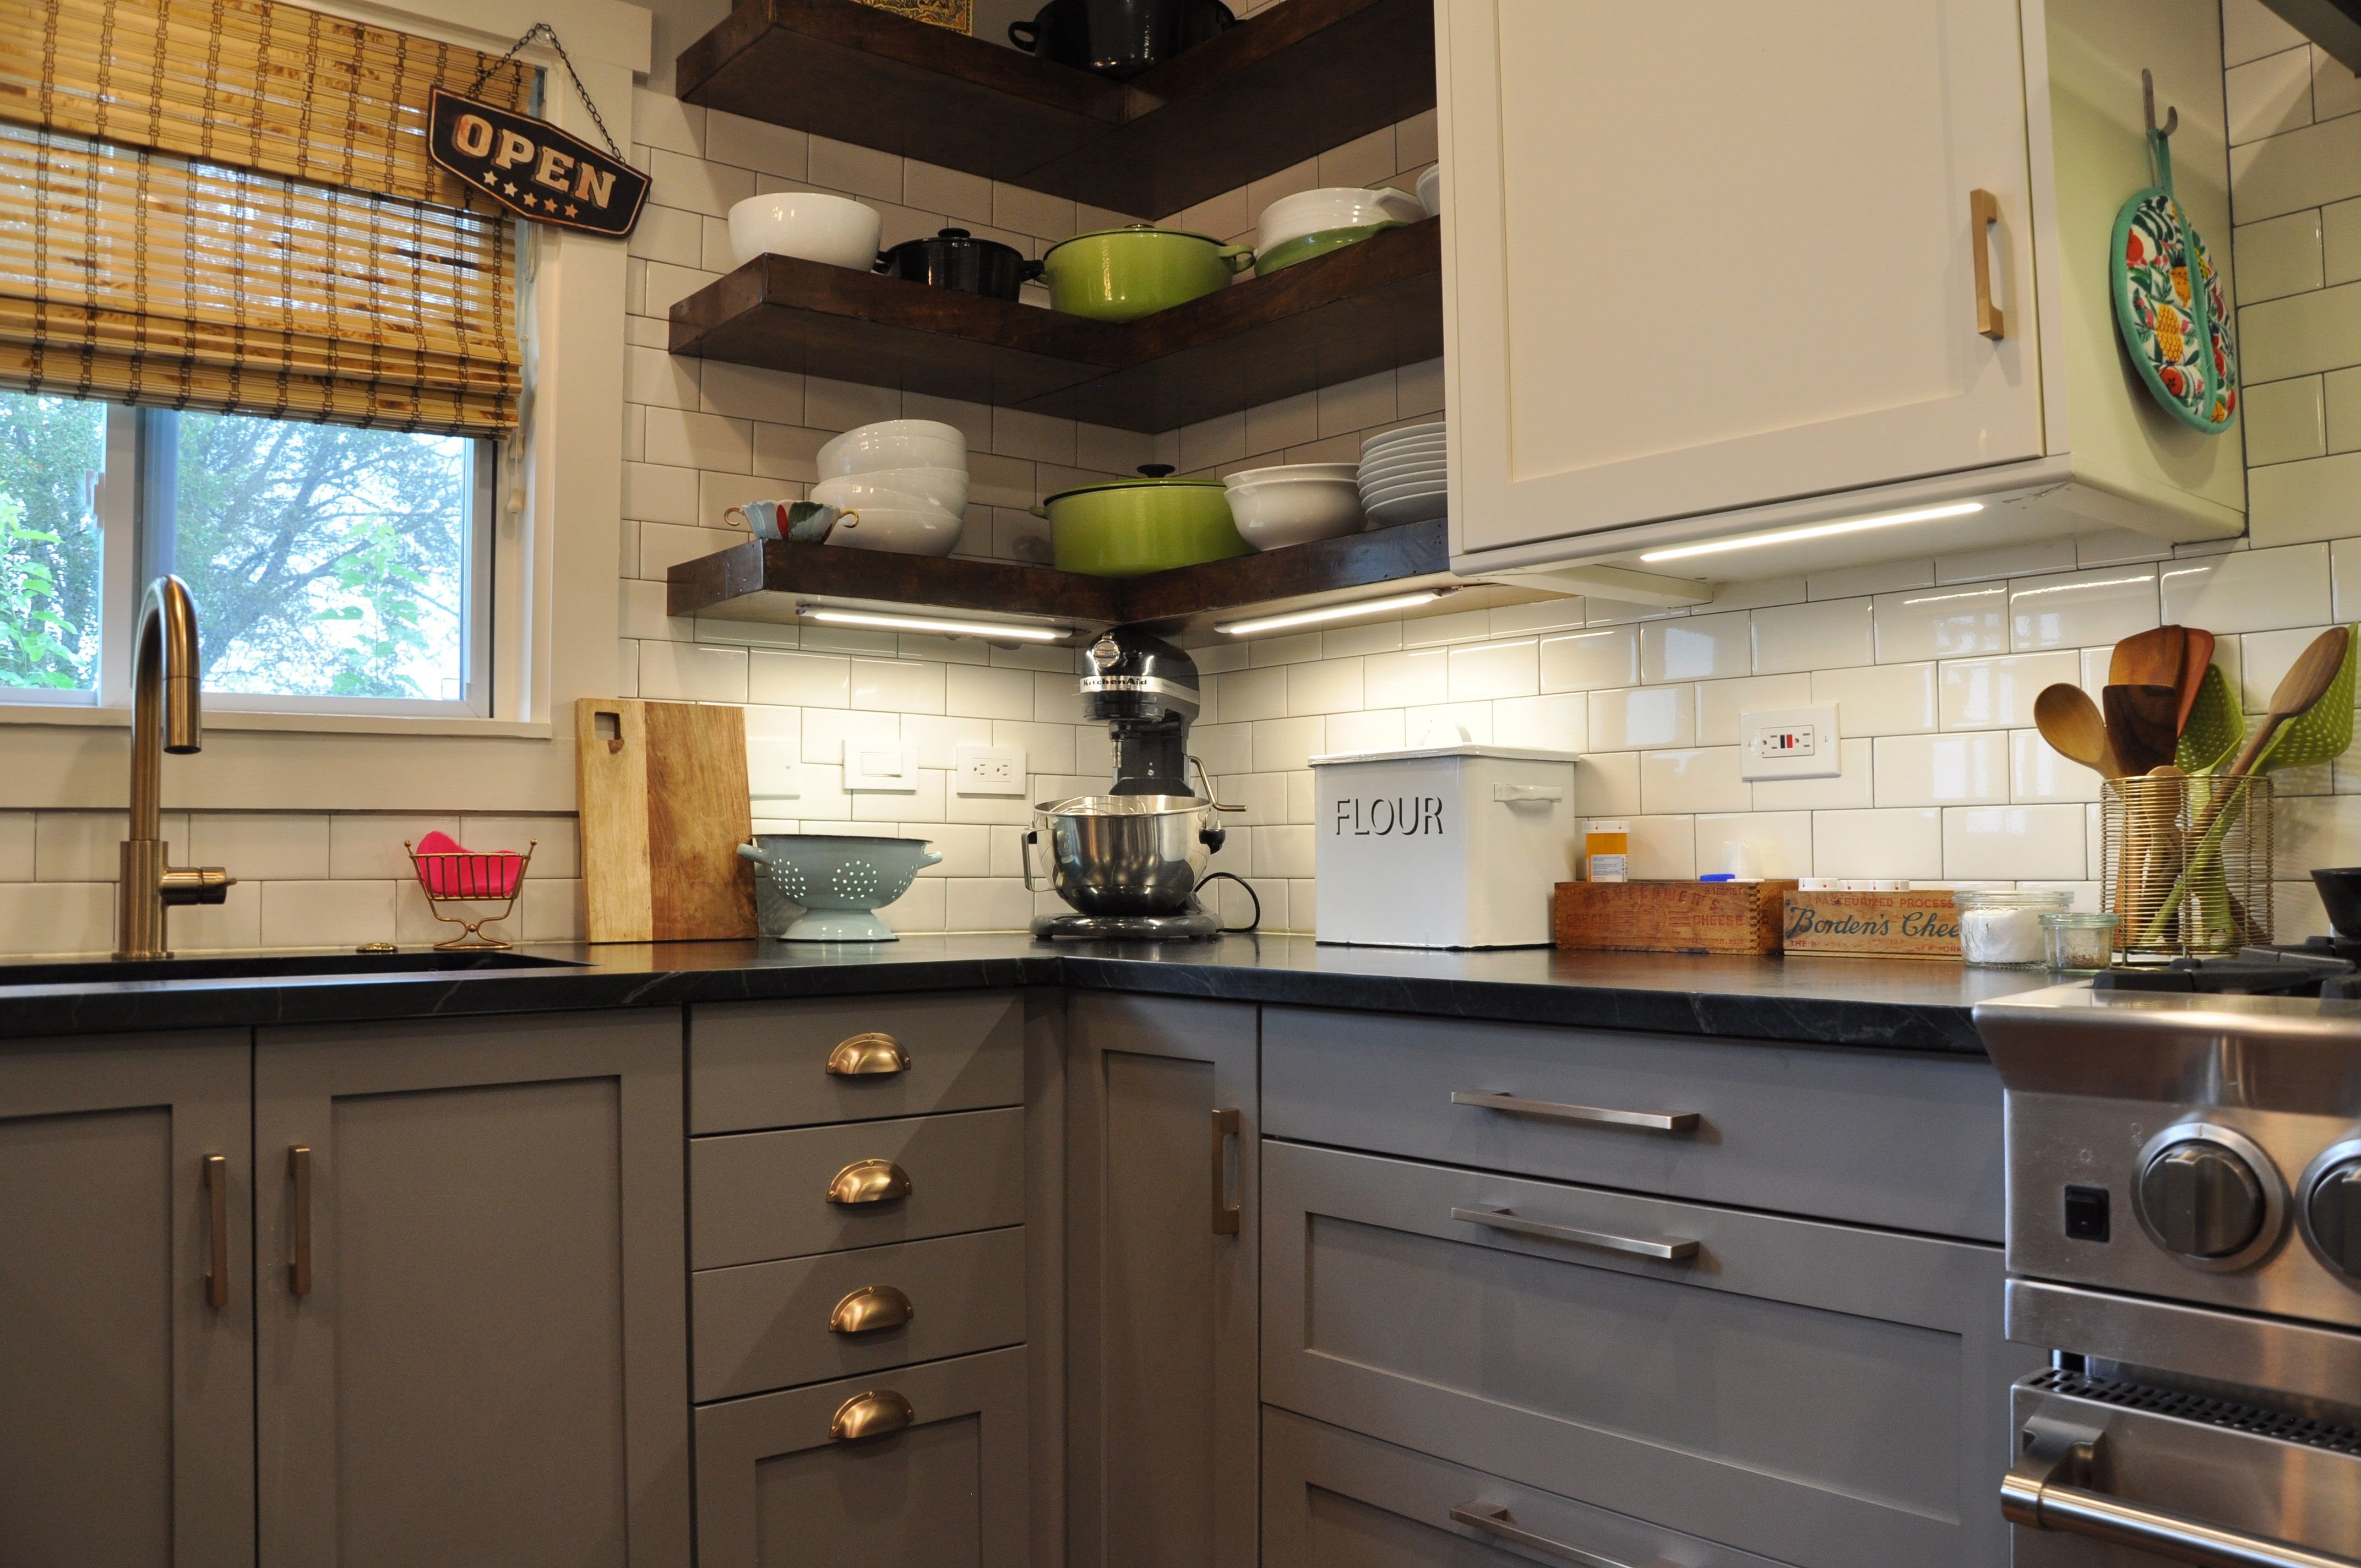 The Open Shelving Was Custom Built By Stacey S Husband To Hold Maximum Weight Stacey Wanted To Open Kitchen Shelves Kitchen Trends Kitchen Inspiration Design